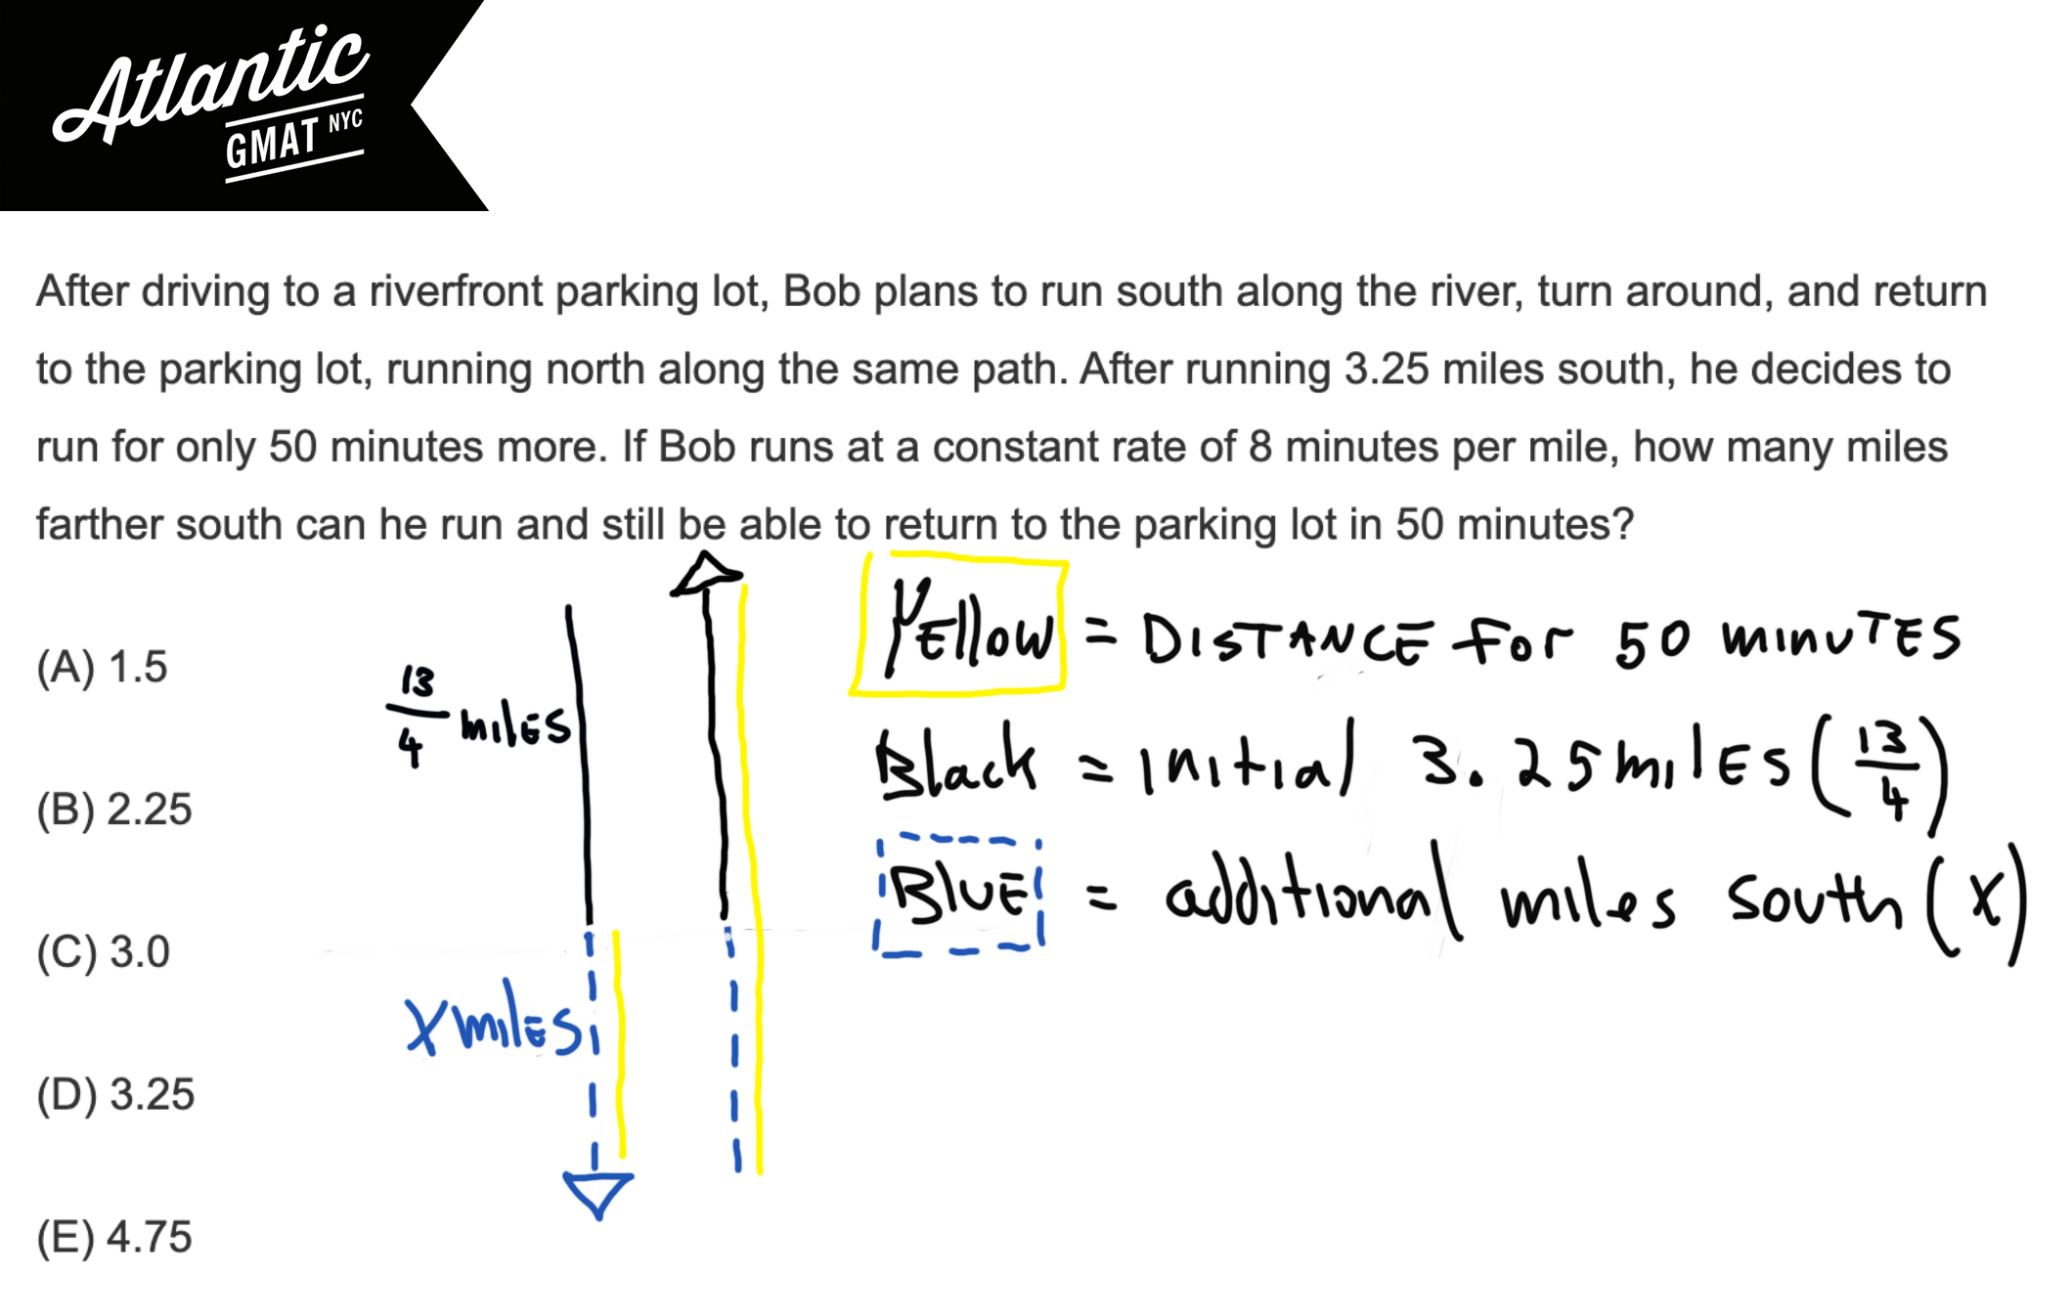 After driving to a riverfront parking lot, Bob plans to run south along the river GMAT Explanation Diagram